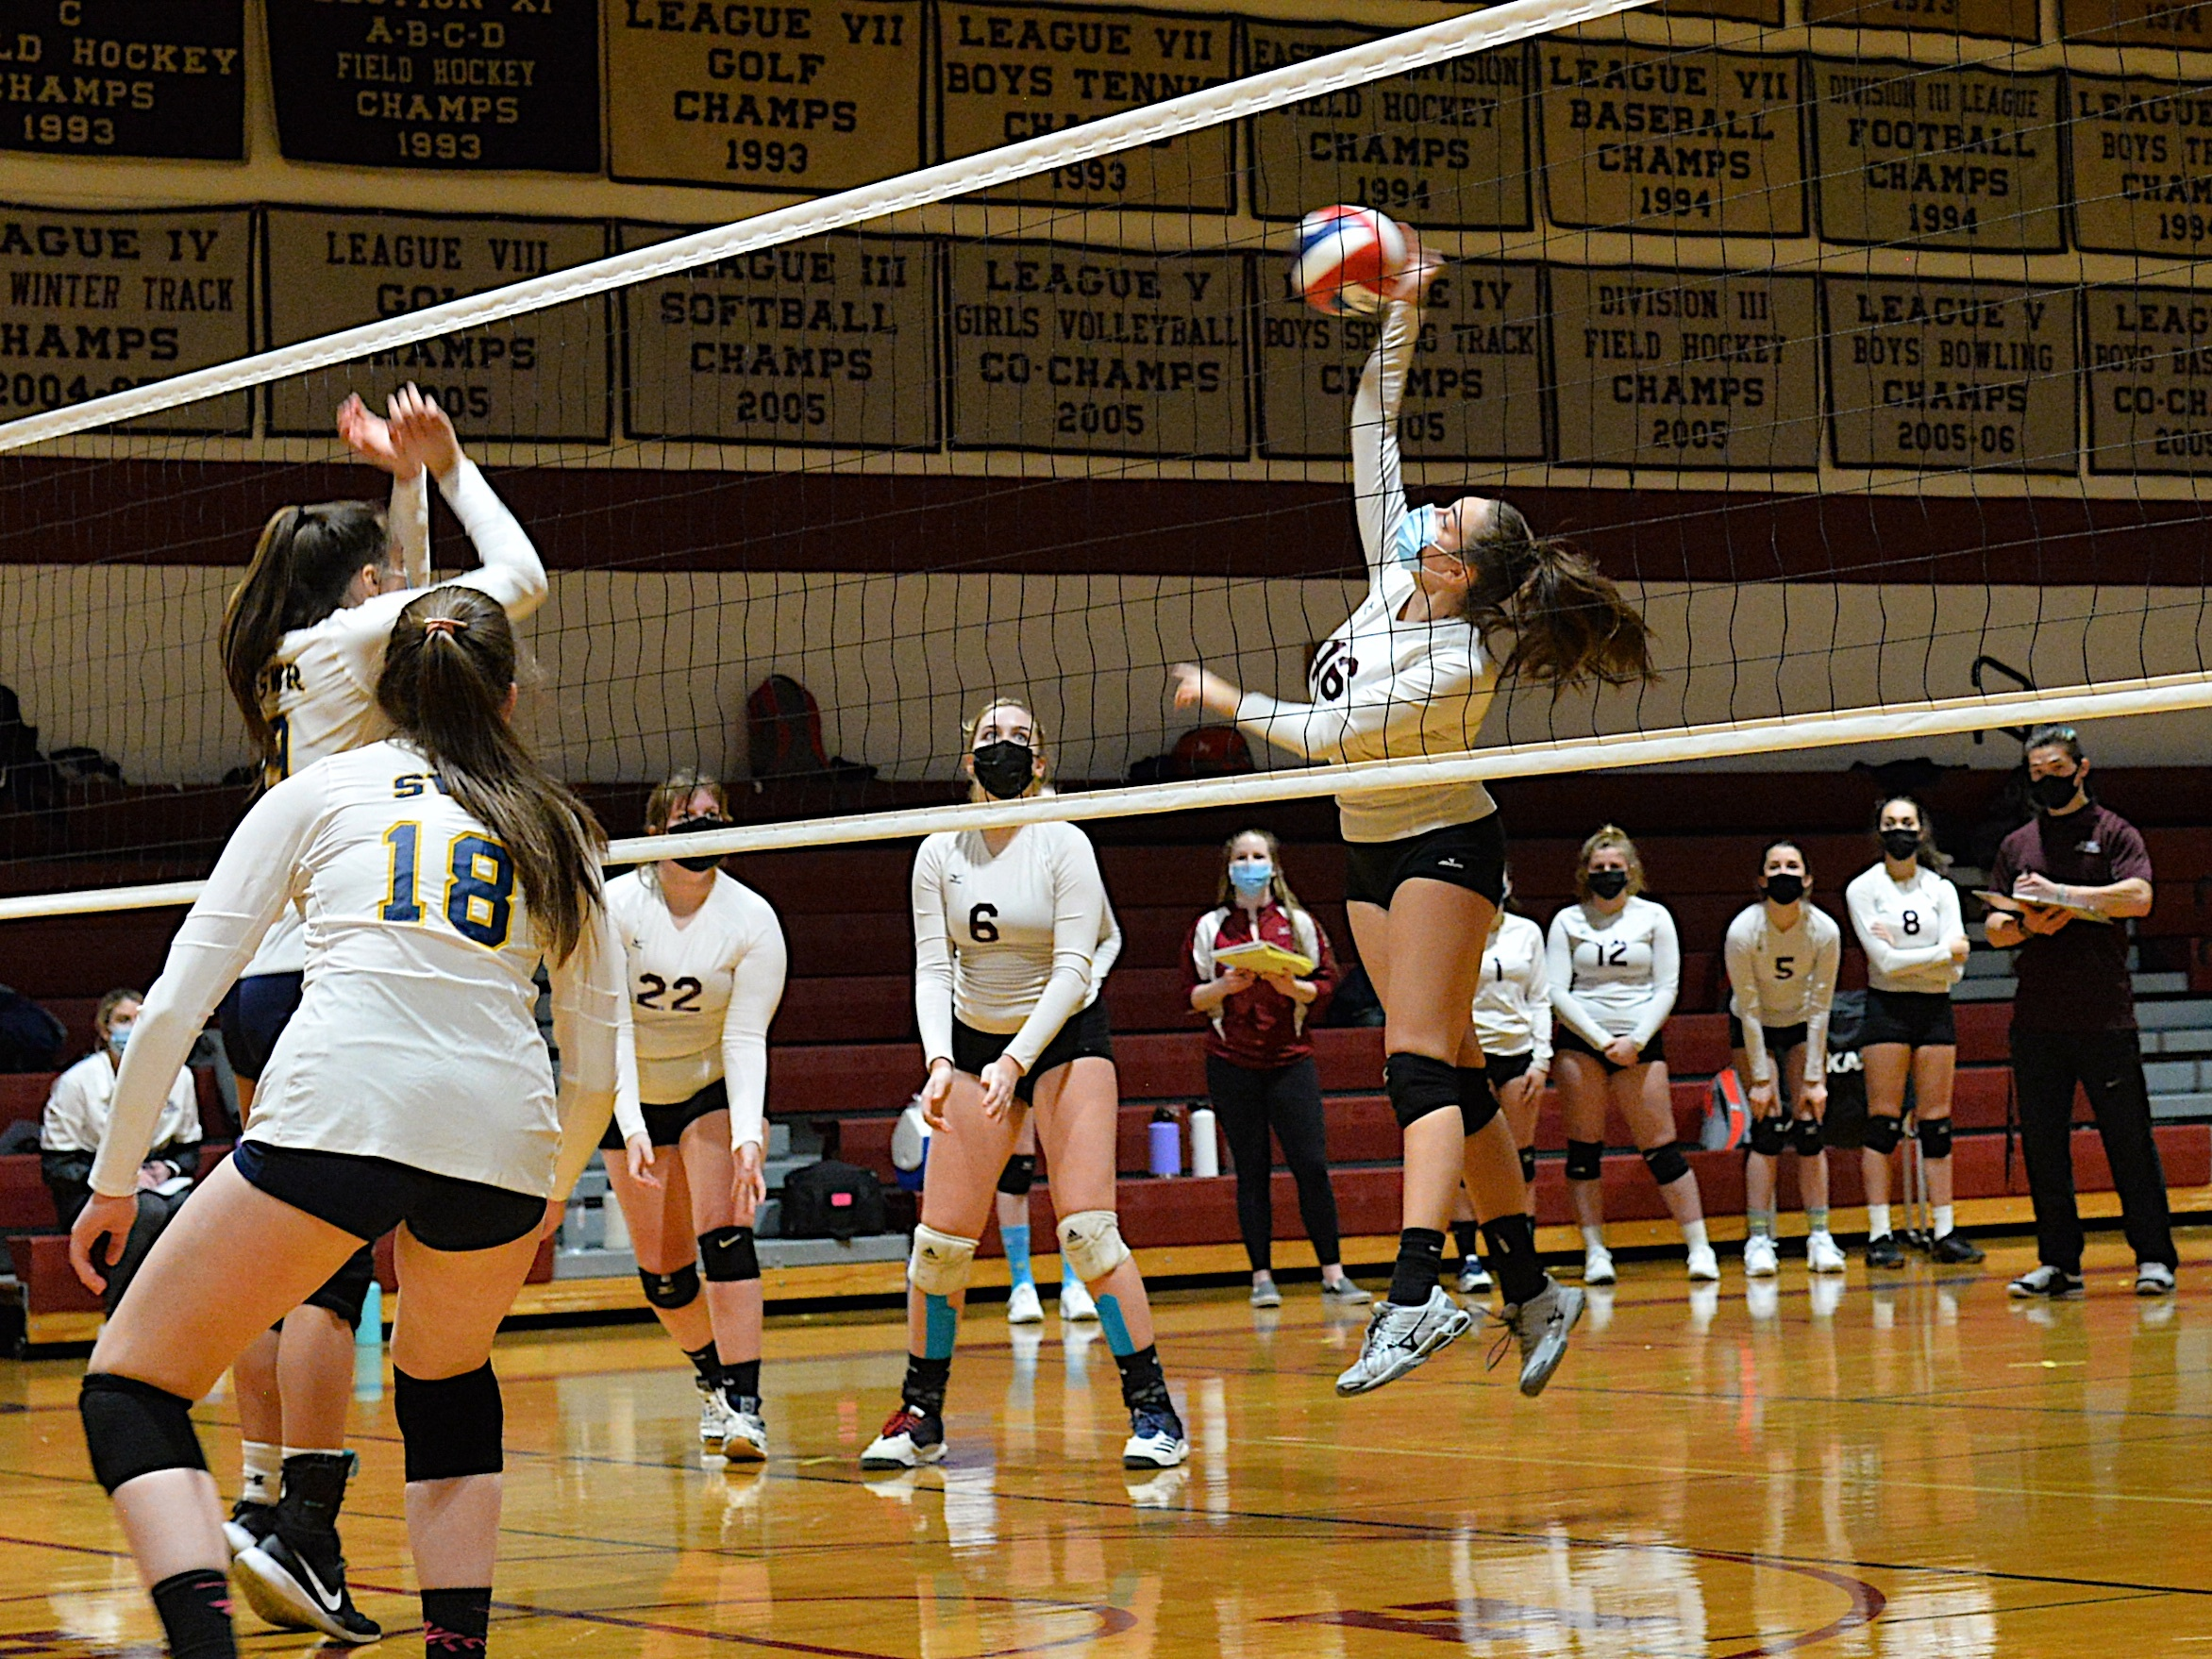 Sorell Miller returns for the East Hampton girls volleyball team this fall.